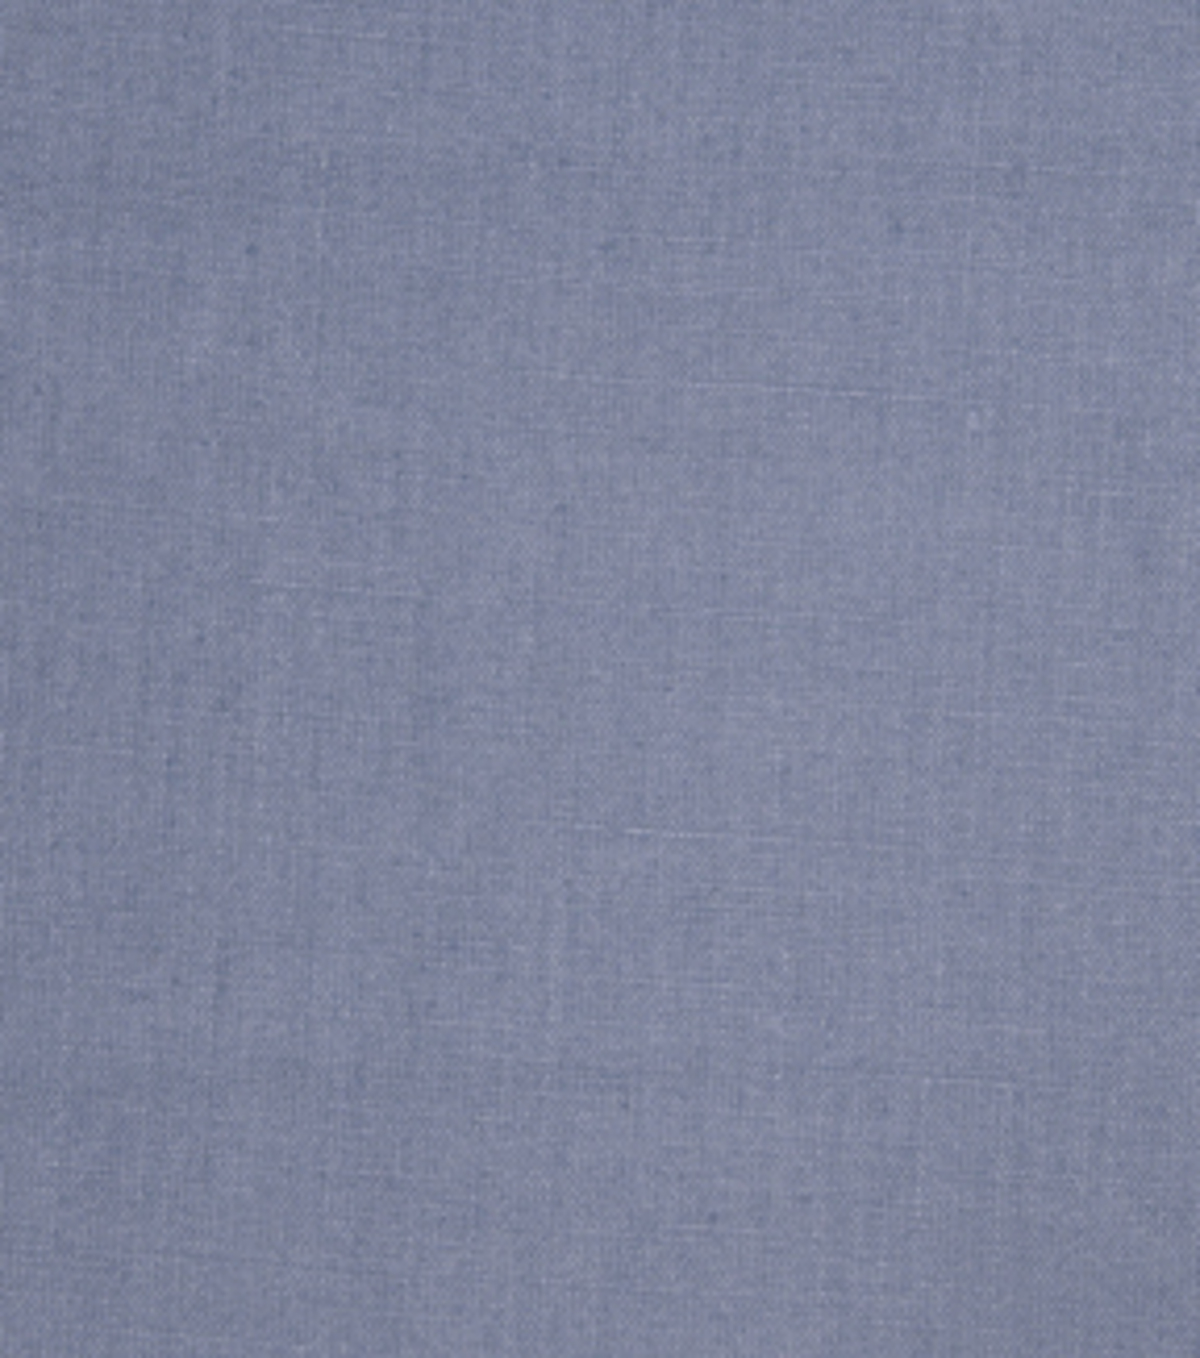 Home Decor 8\u0022x8\u0022 Fabric Swatch-Signature Series Sigourney Copen